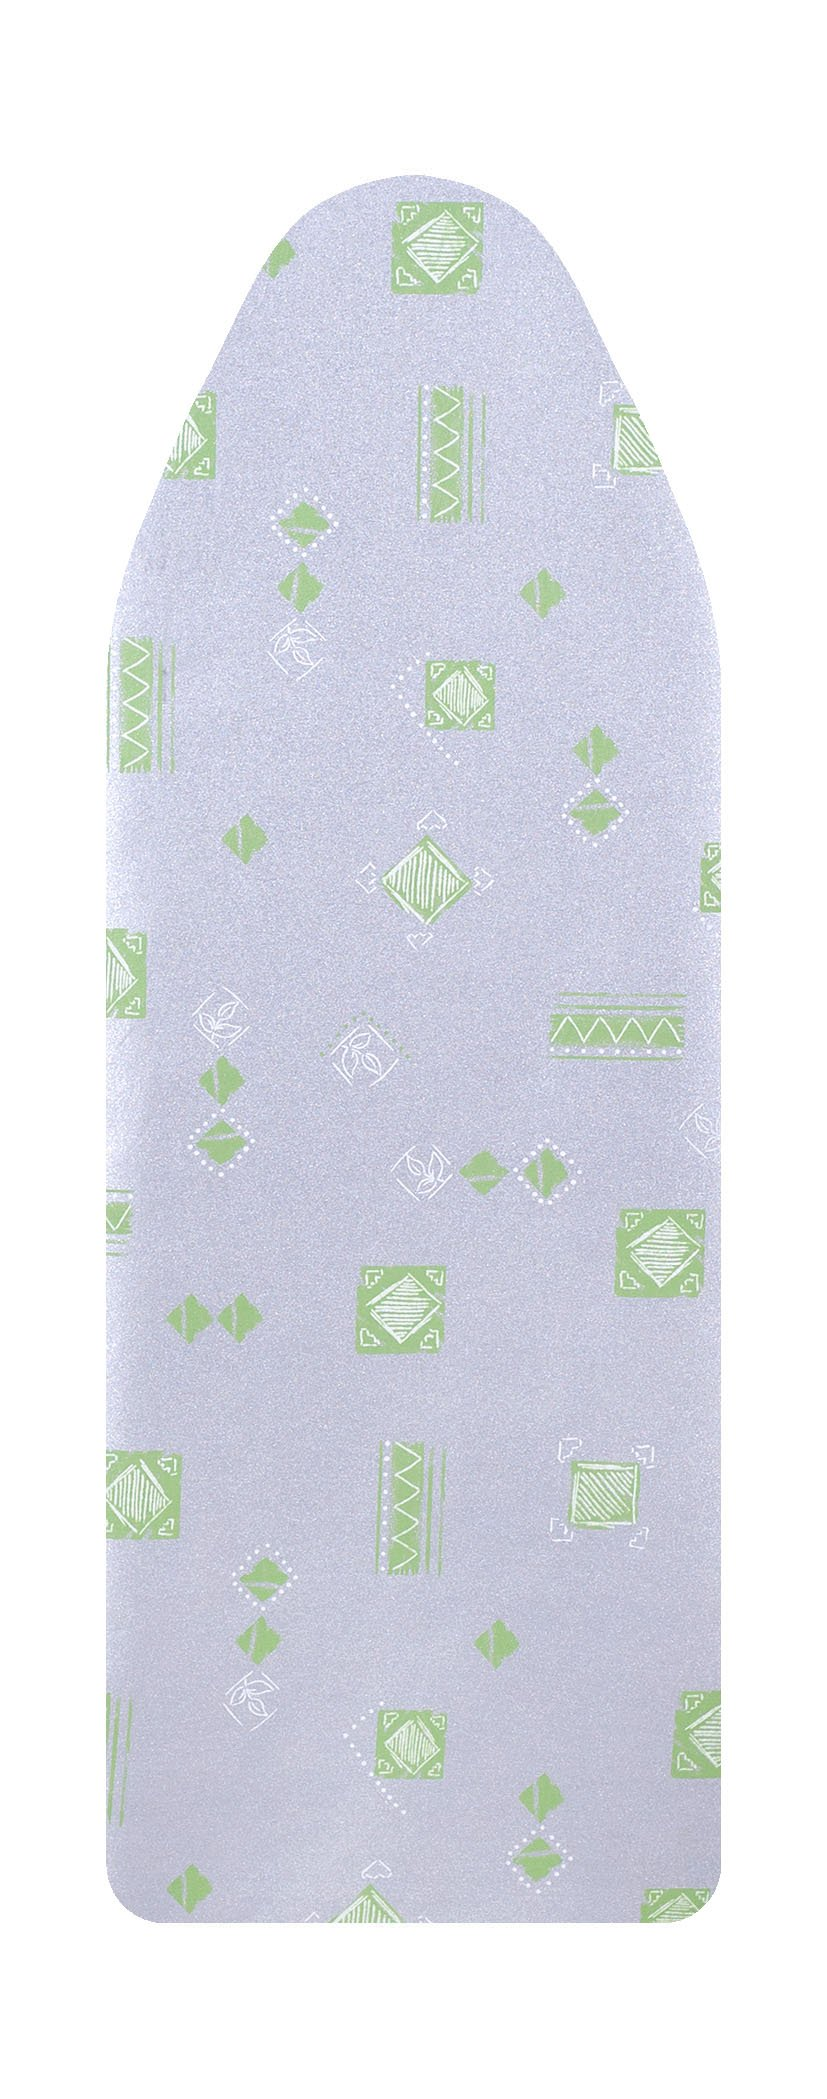 VieveMar Ironing Board Cover, SAVE 50% IRONING TIME! EASY FIT with DrawString, NO DYE TRANSFER! 3 DURABLE LAYERS with Cotton, Aluminum and Teflon, Heat Reflective, Fits Wide Boards 18'' x 49'' (Green)